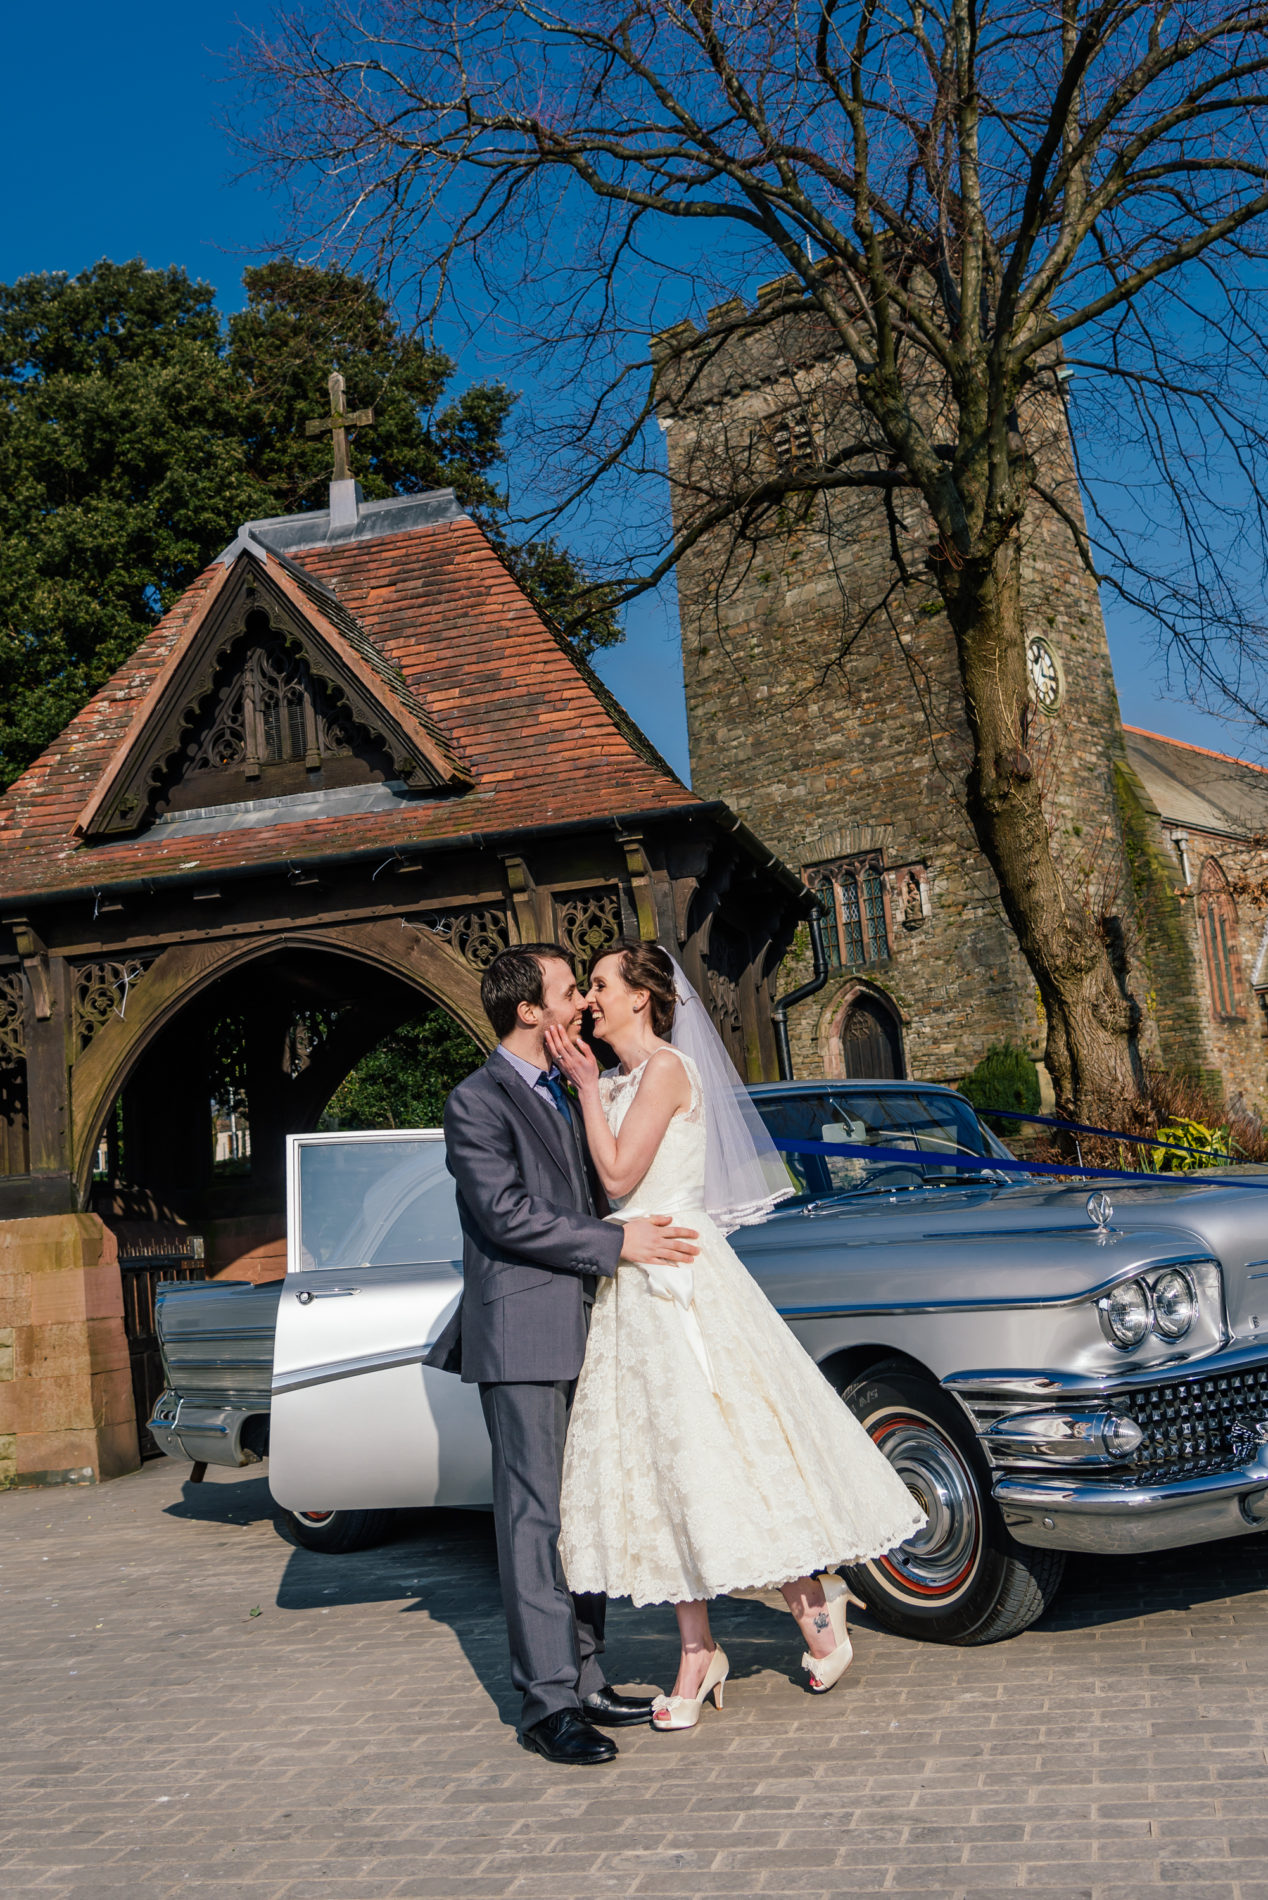 Wedding at Llanelli Parish Church with 1950s Buick wedding car